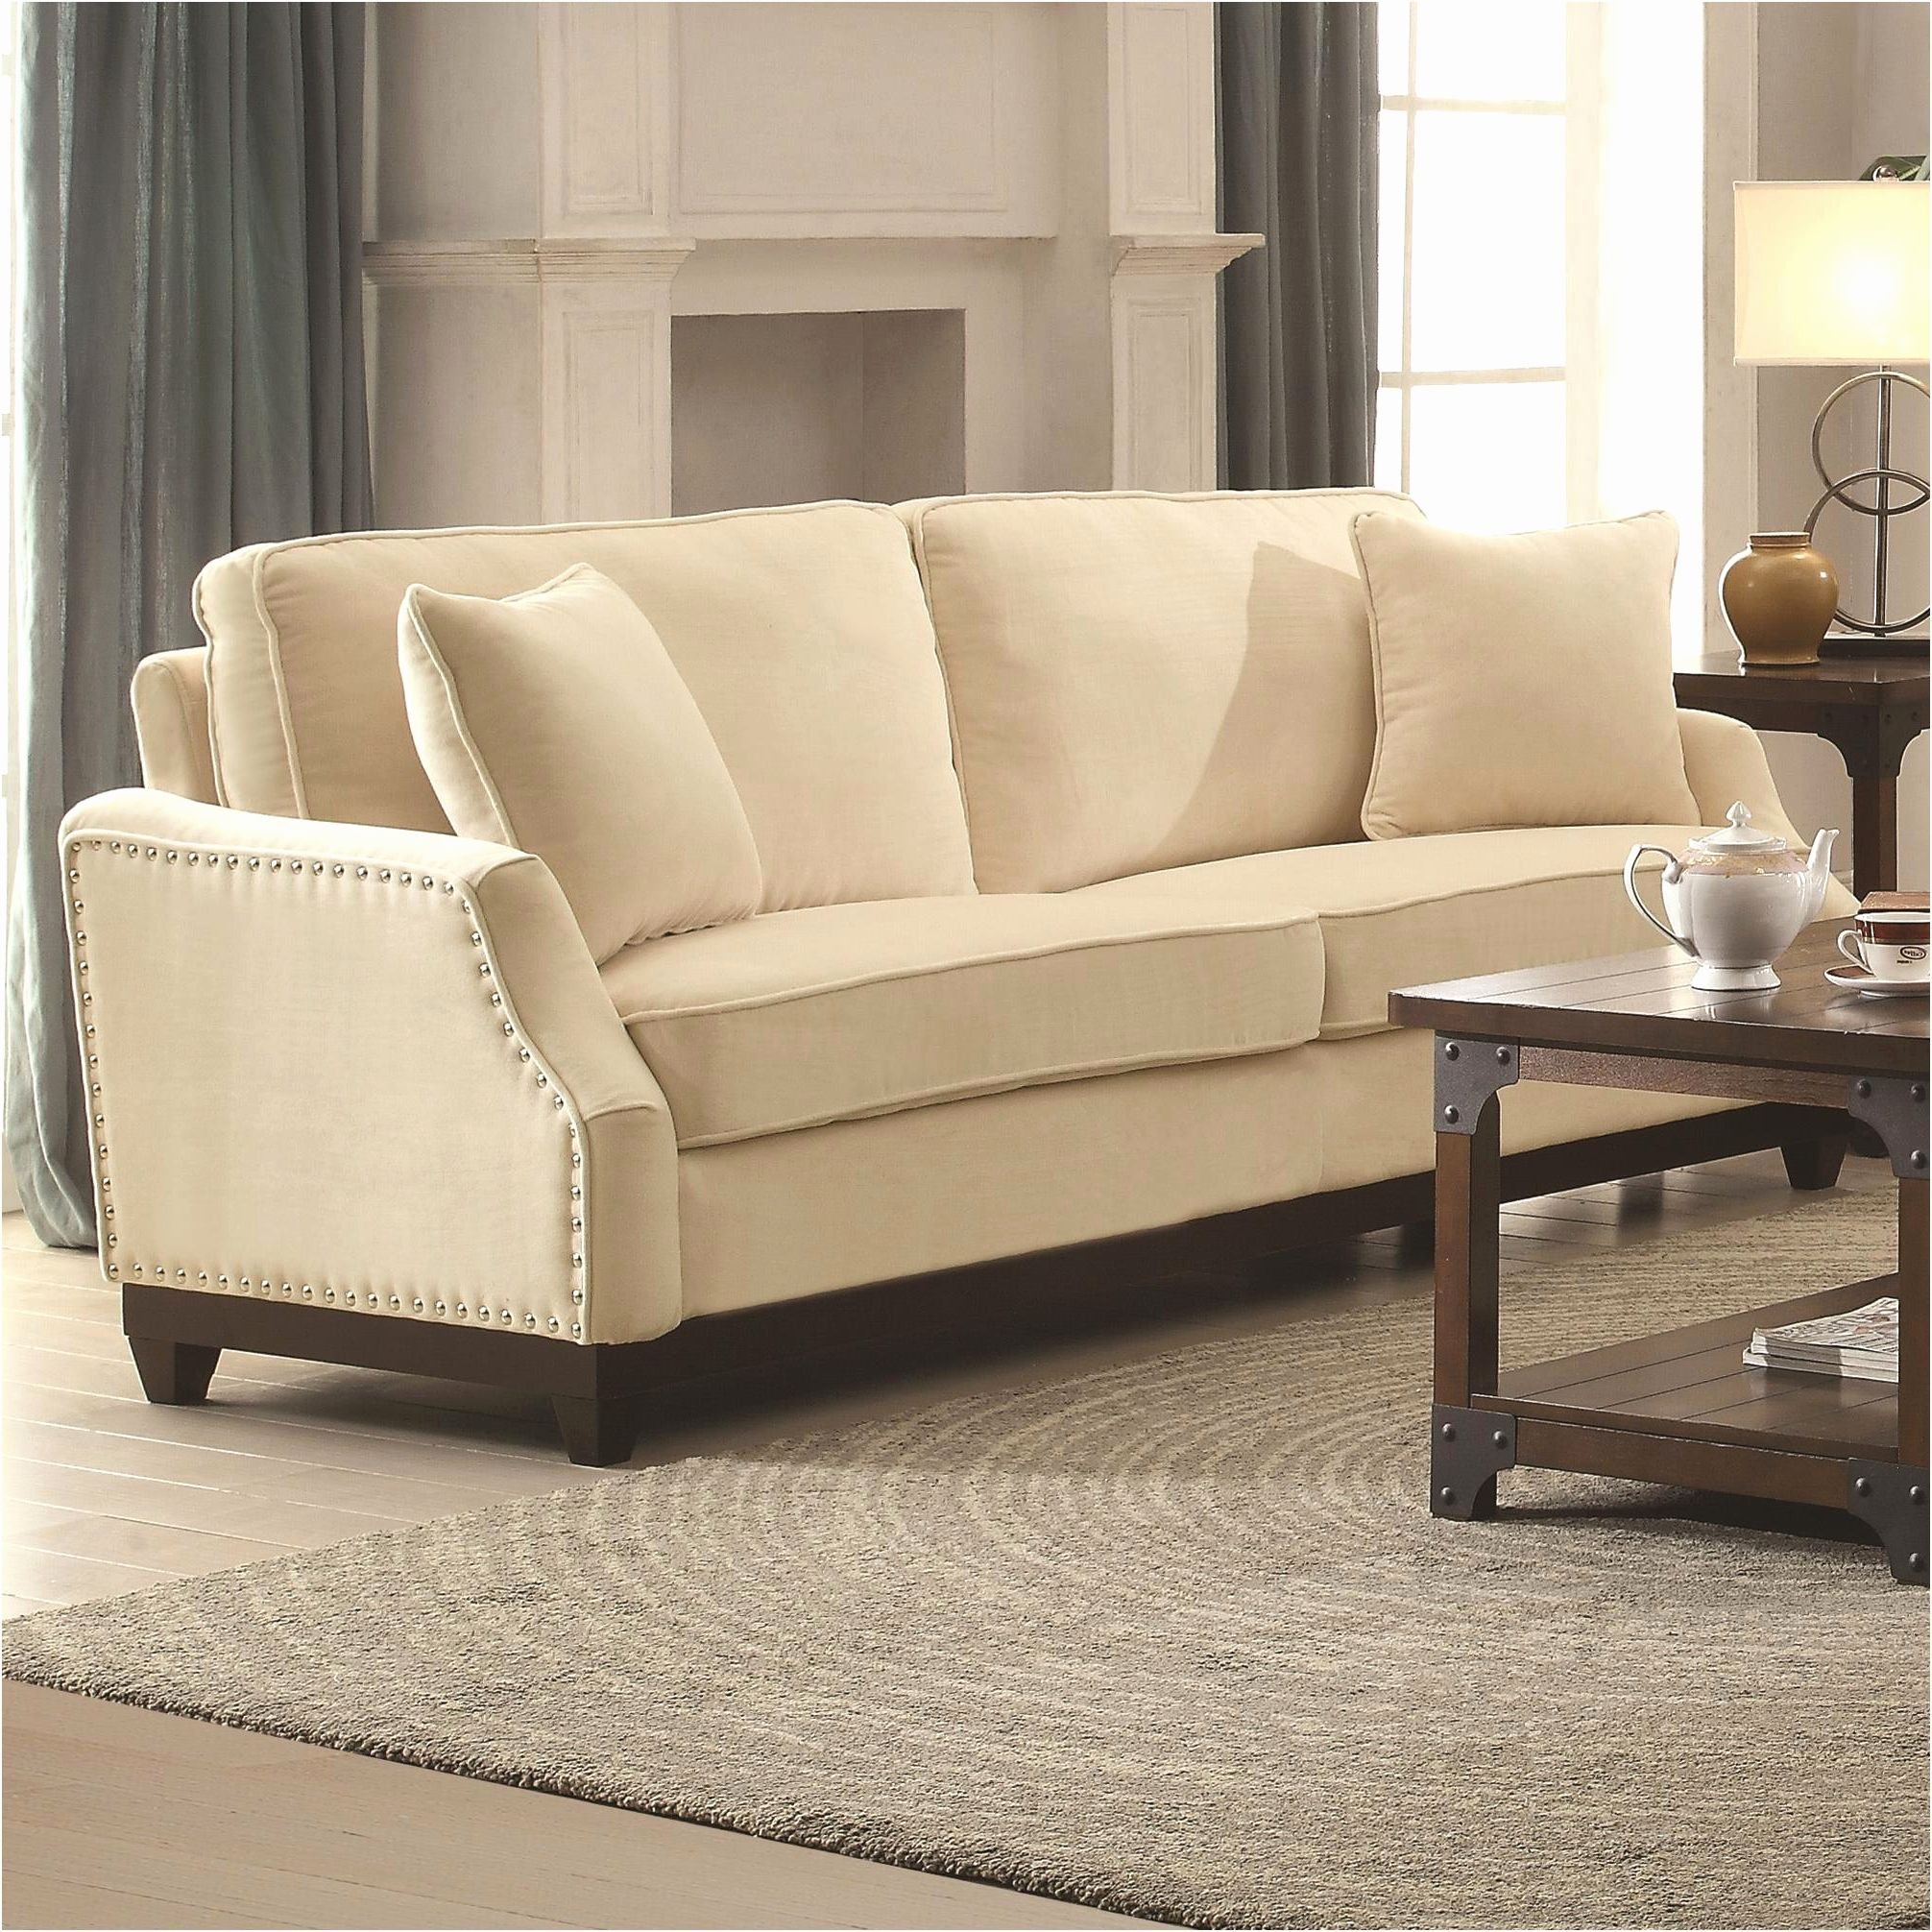 Lovely Cream Leather Sofa Pictures Chair Cool Cream Leather Sofa  ~ Leather Sofa With Nailheads